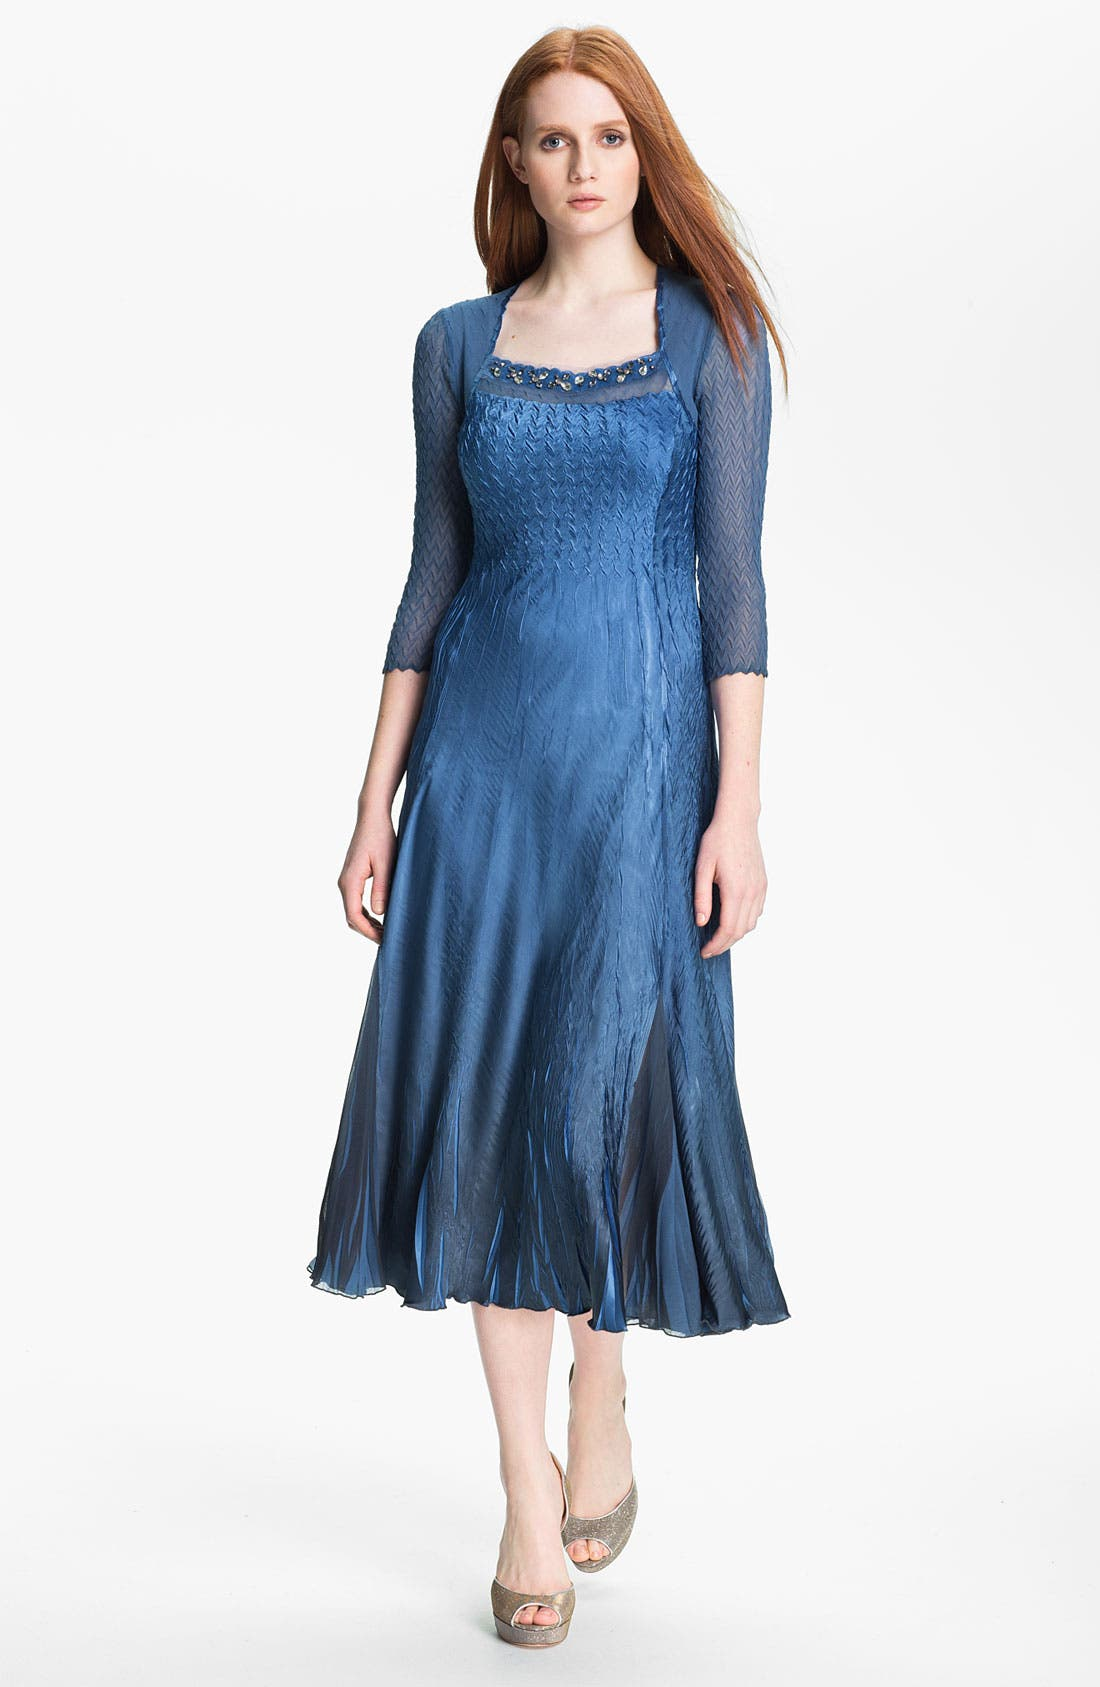 Alternate Image 1 Selected - Komarov Embellished Square Neck Textured Charmeuse Dress